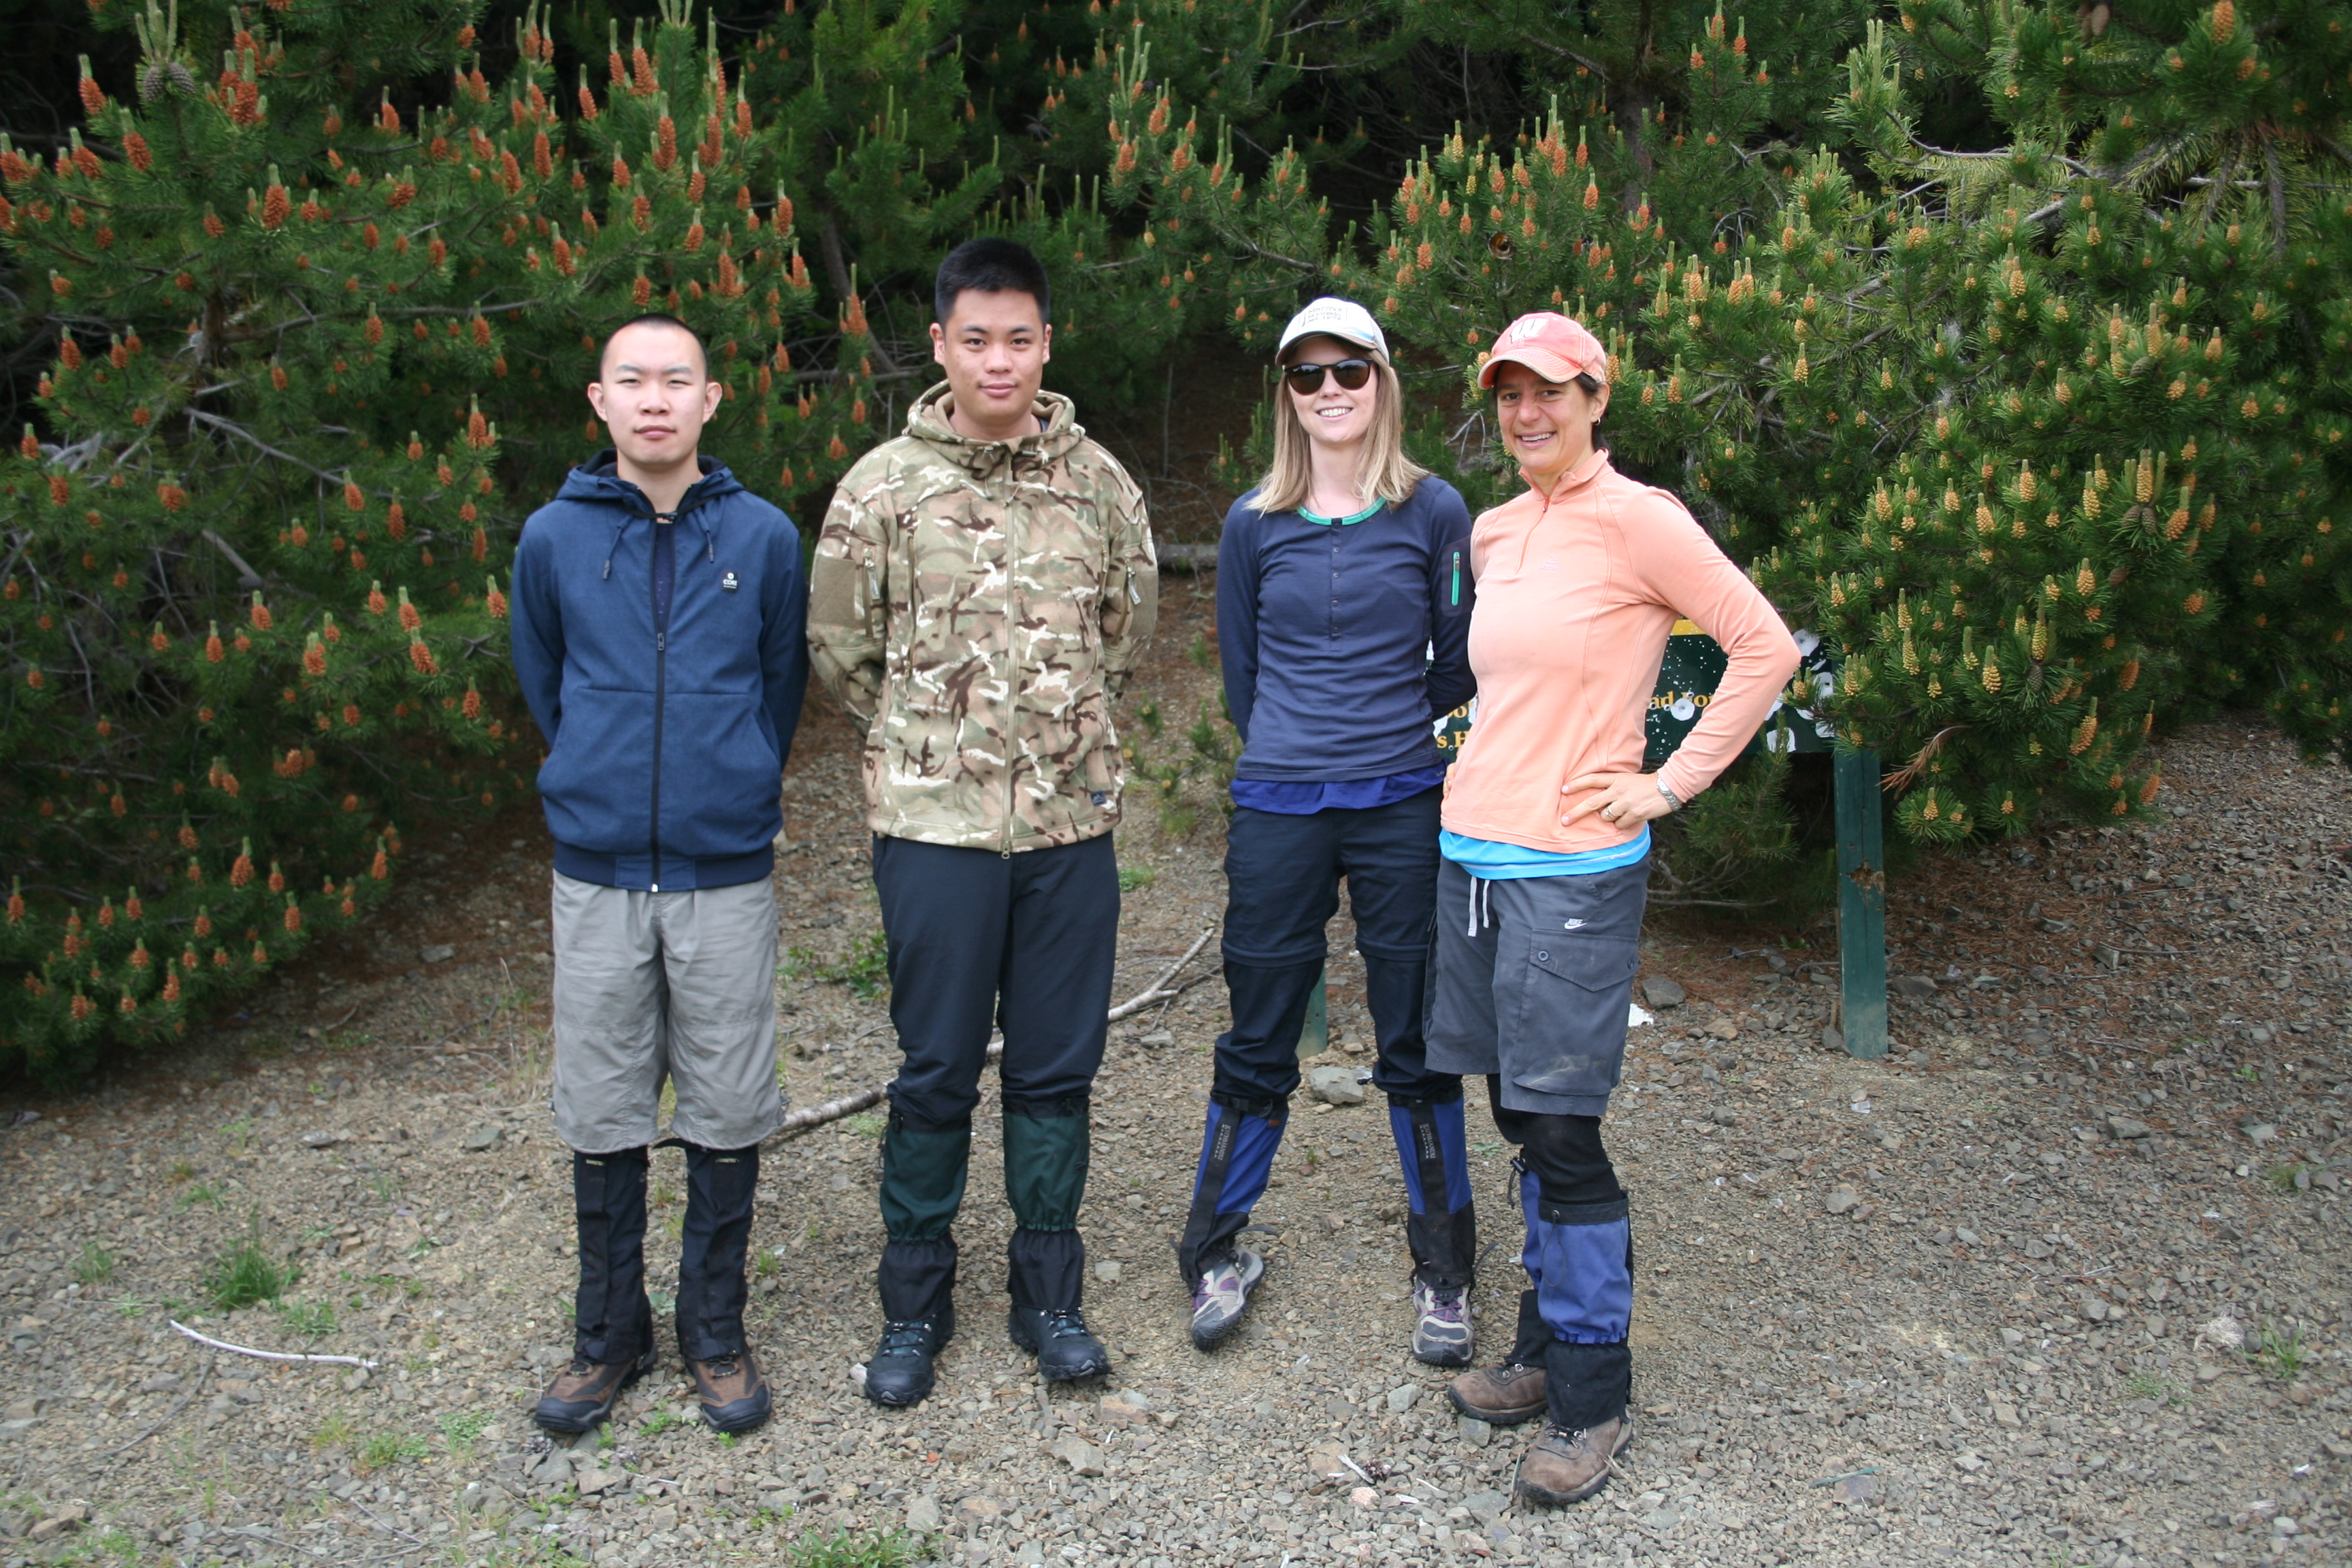 Four people standing on a dirt track in front of bushes.